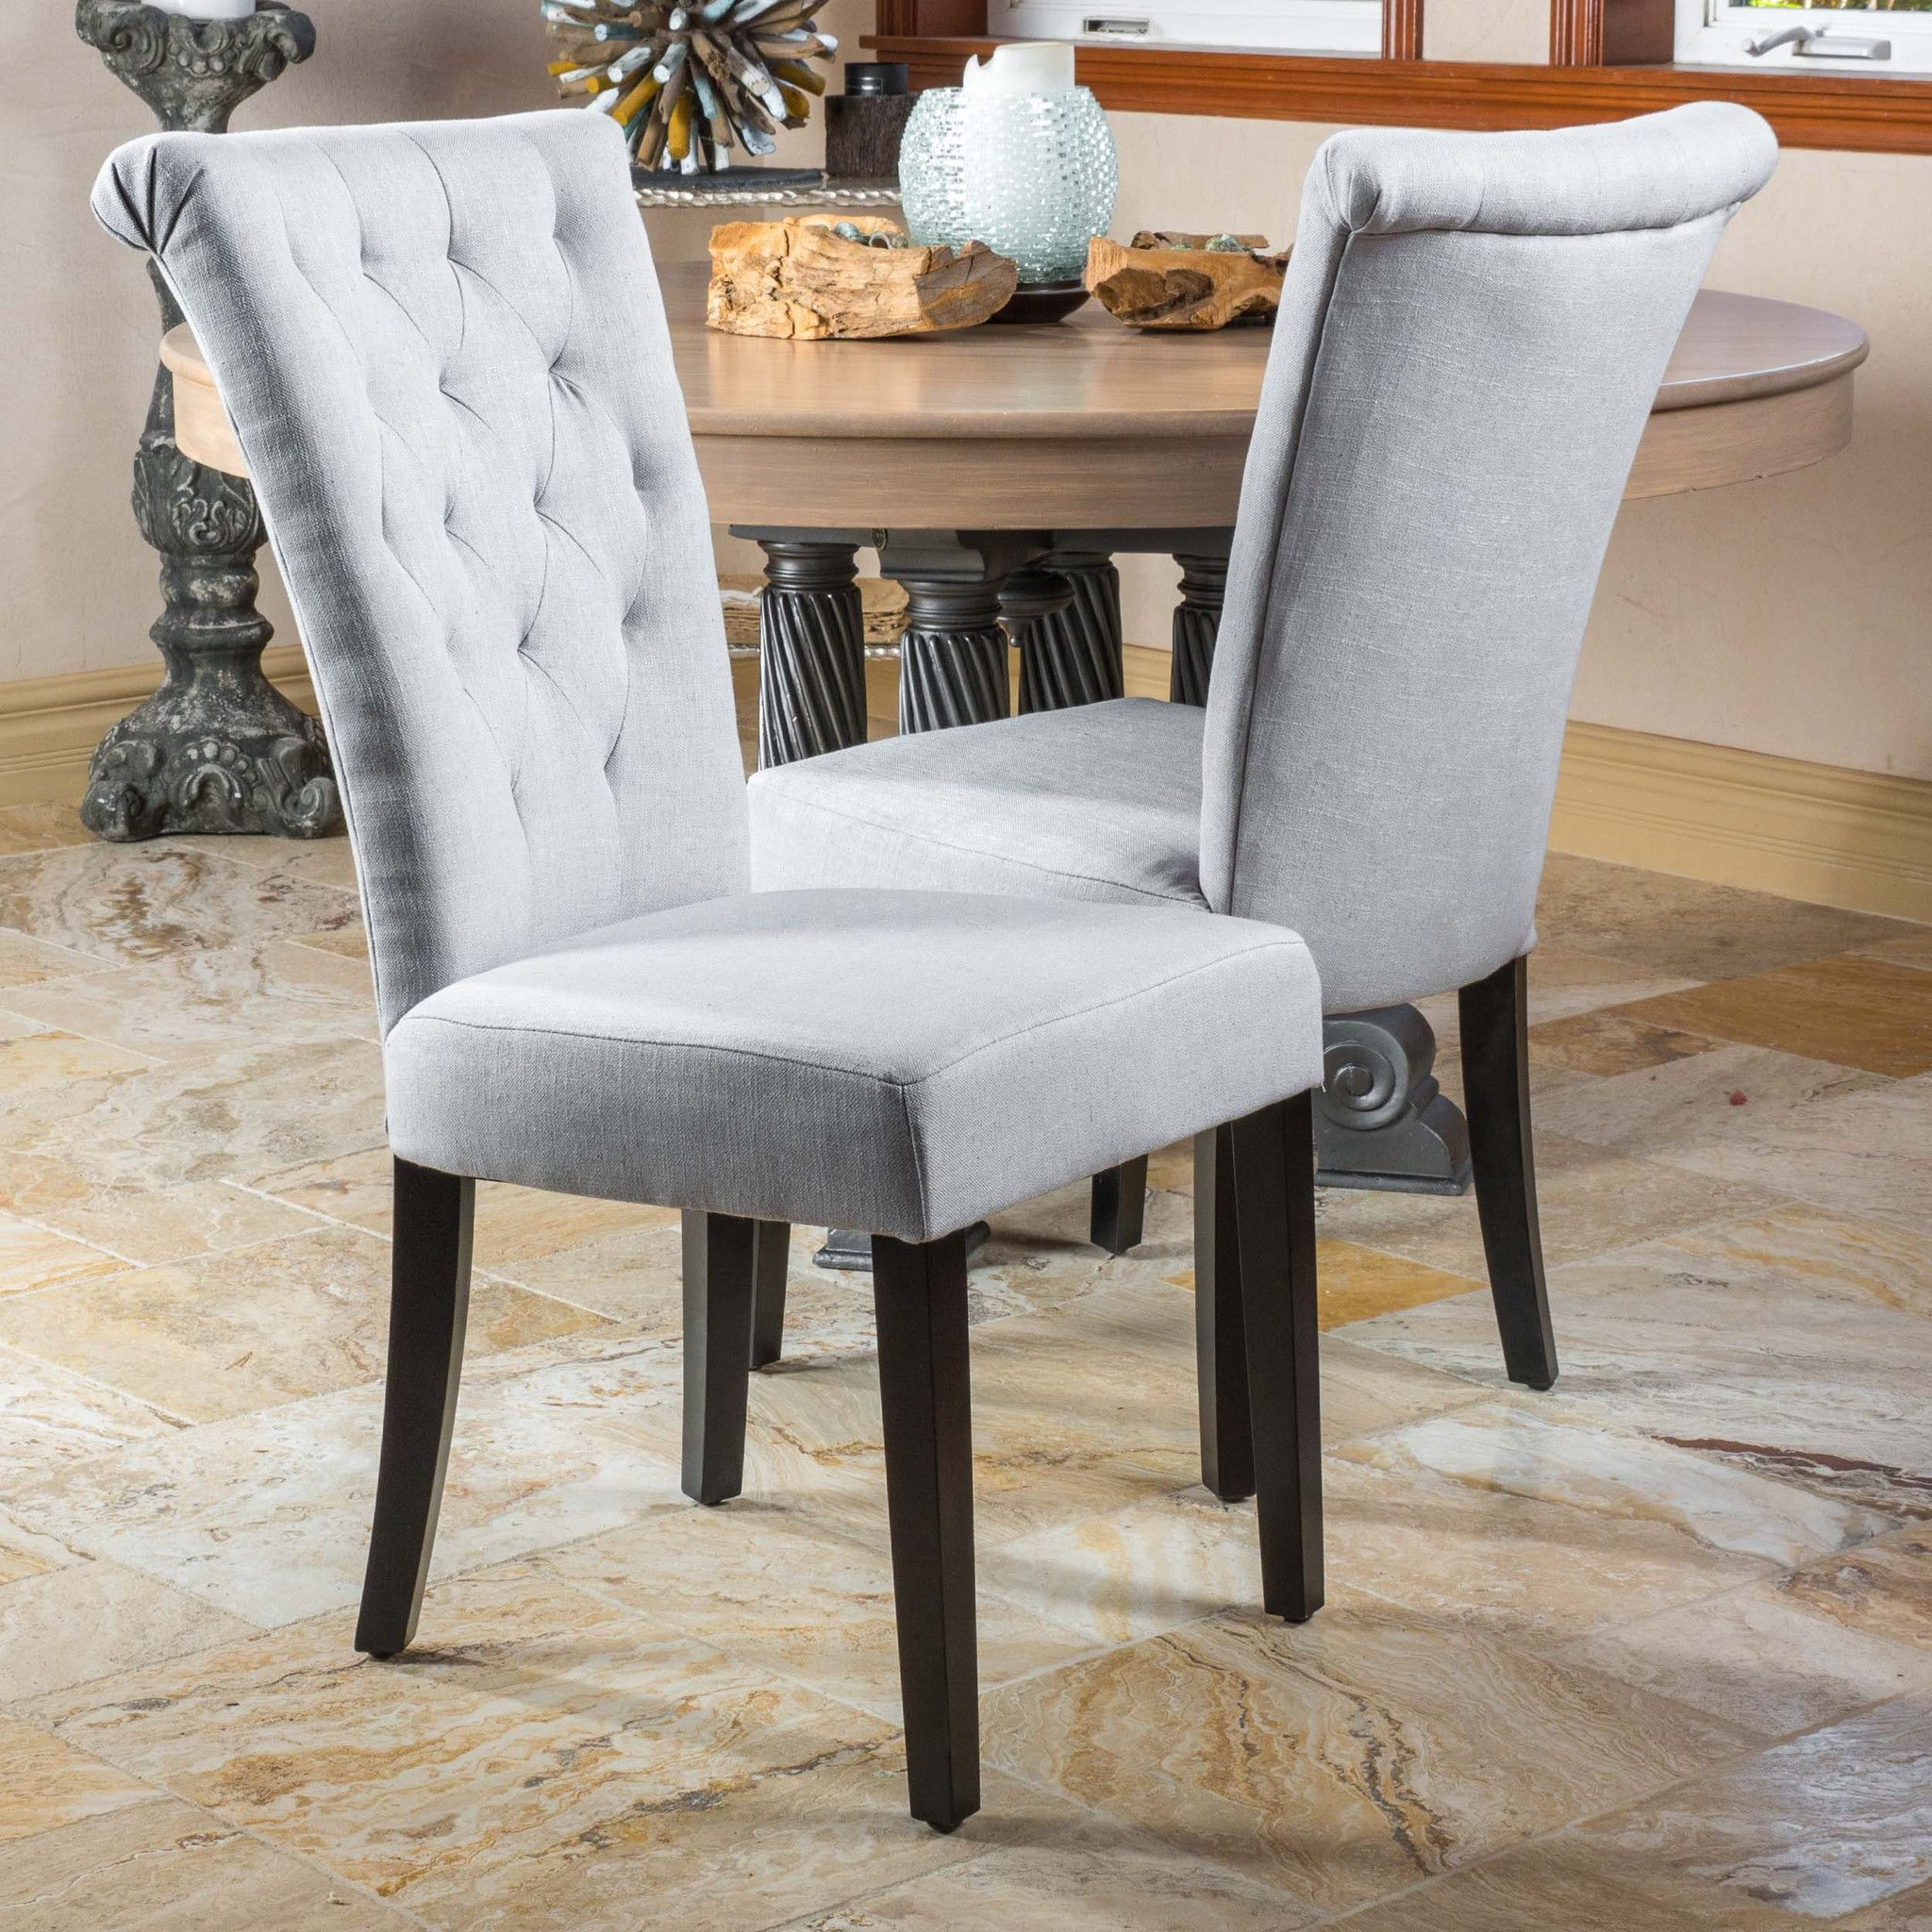 Paulina Light Grey Fabric Dining Chairs Set Of 2 Tufted Dining